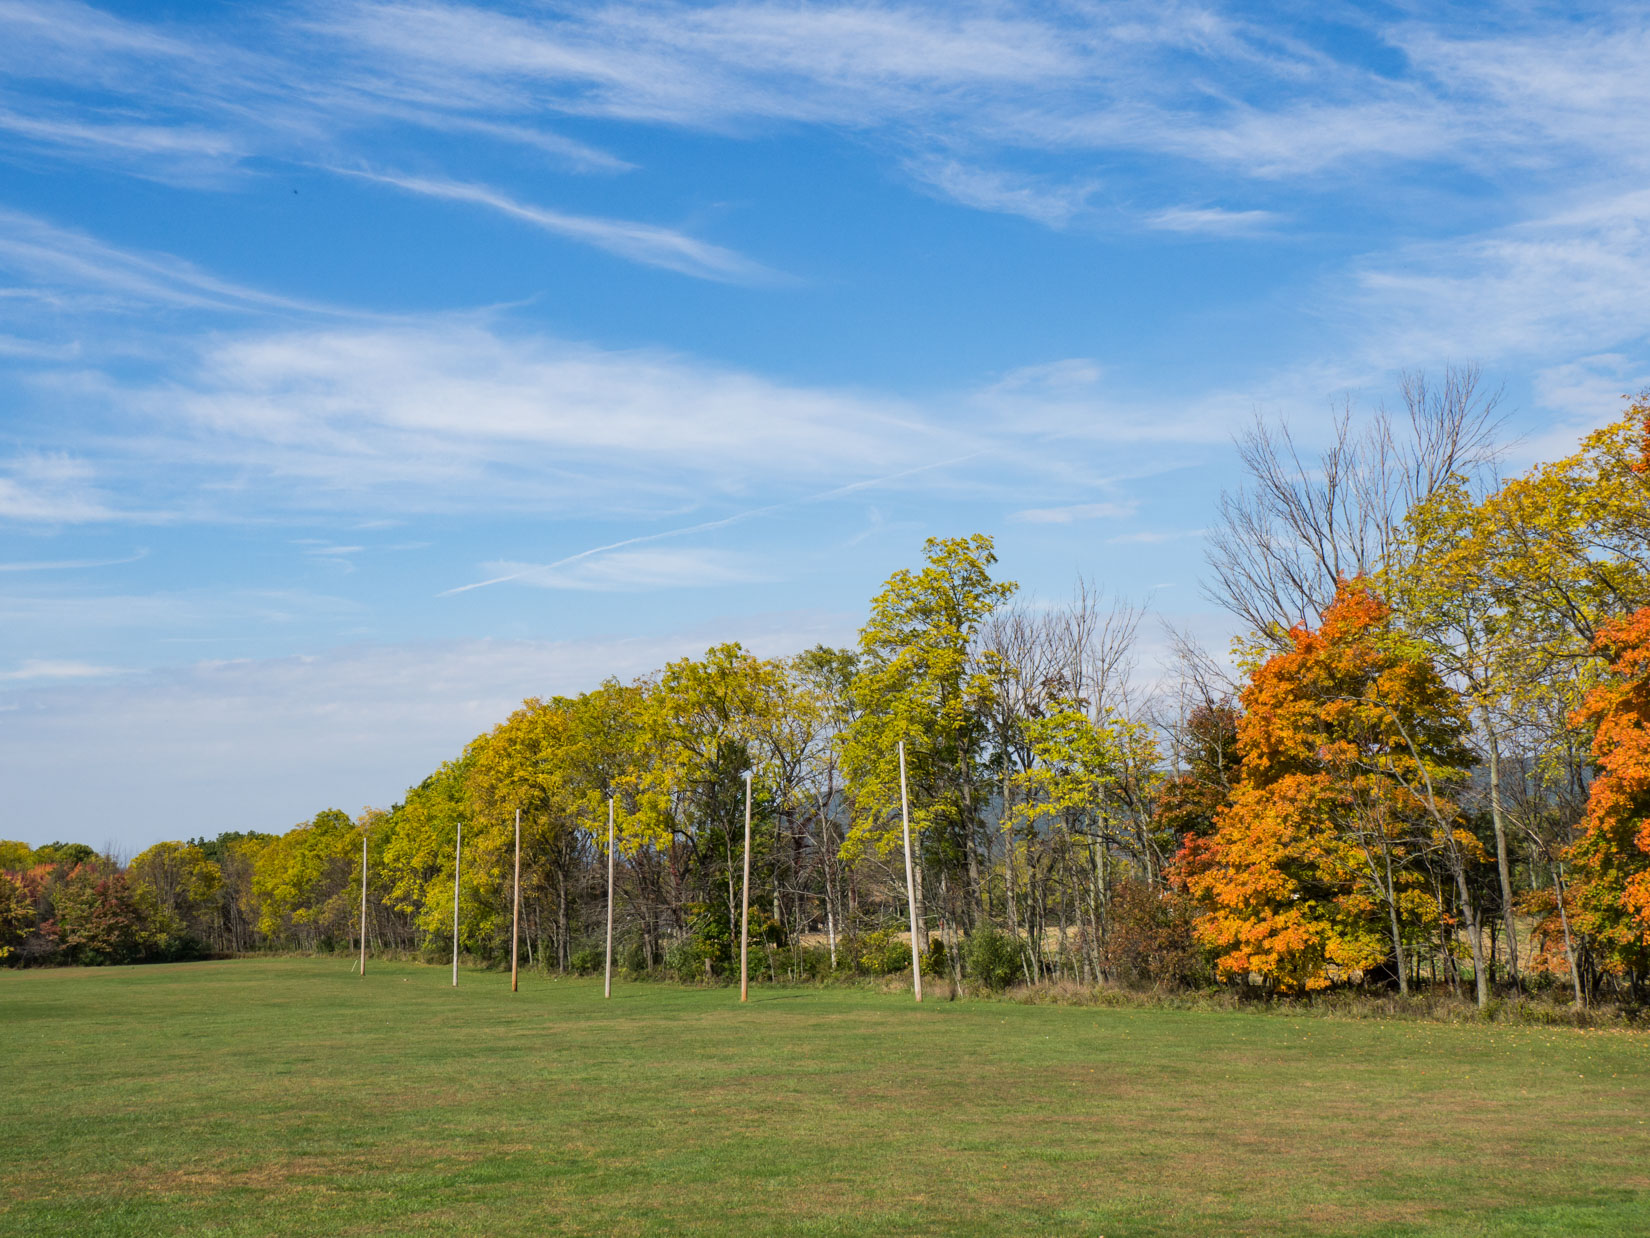 Field and Trees with Leaves Over Blue Sky